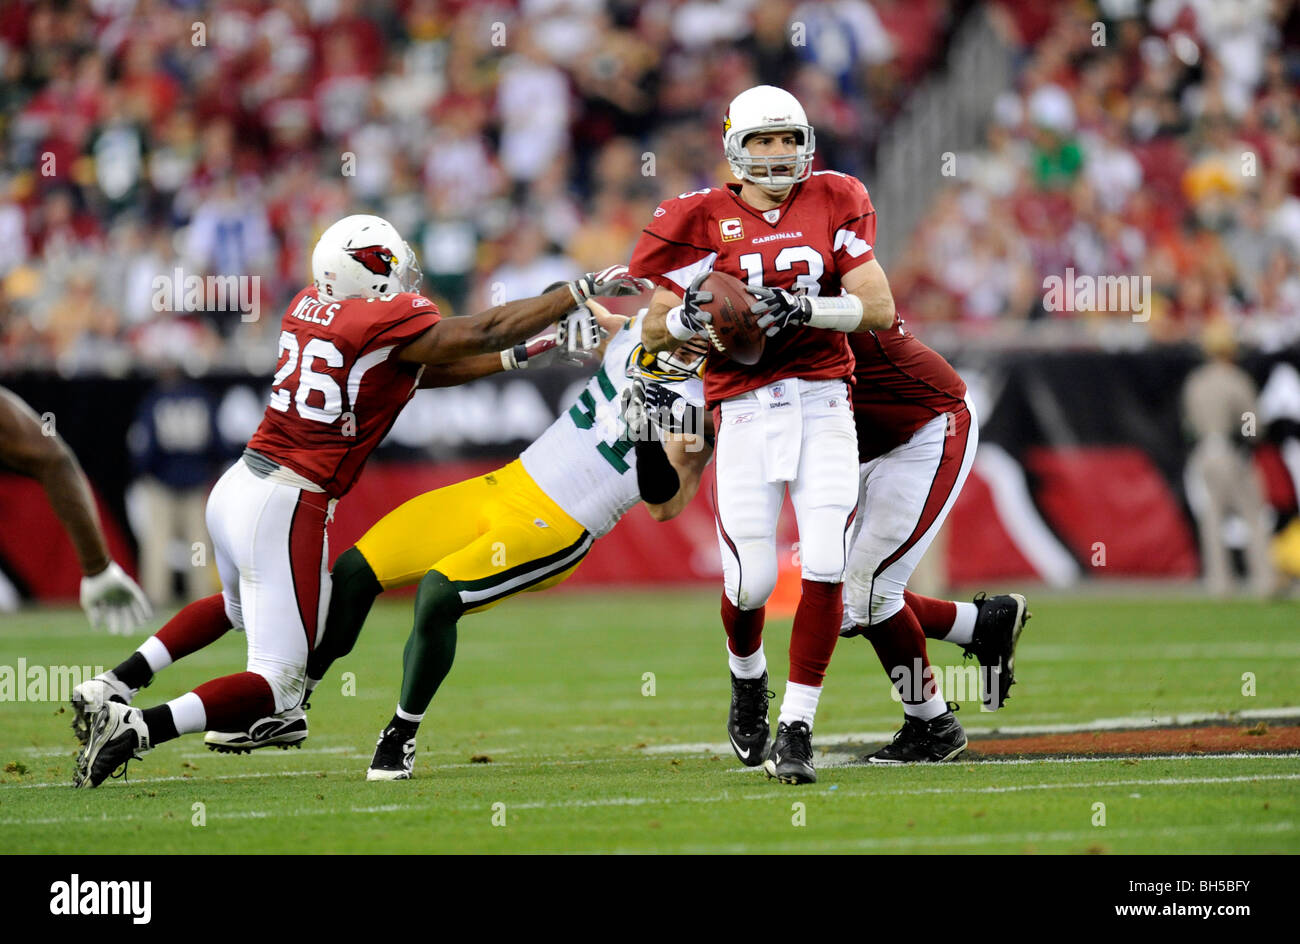 Kurt Warner #13 of the Arizona Cardinals drops back to pass against the Green Bay Packers in the NFC wild-card playoff - Stock Image